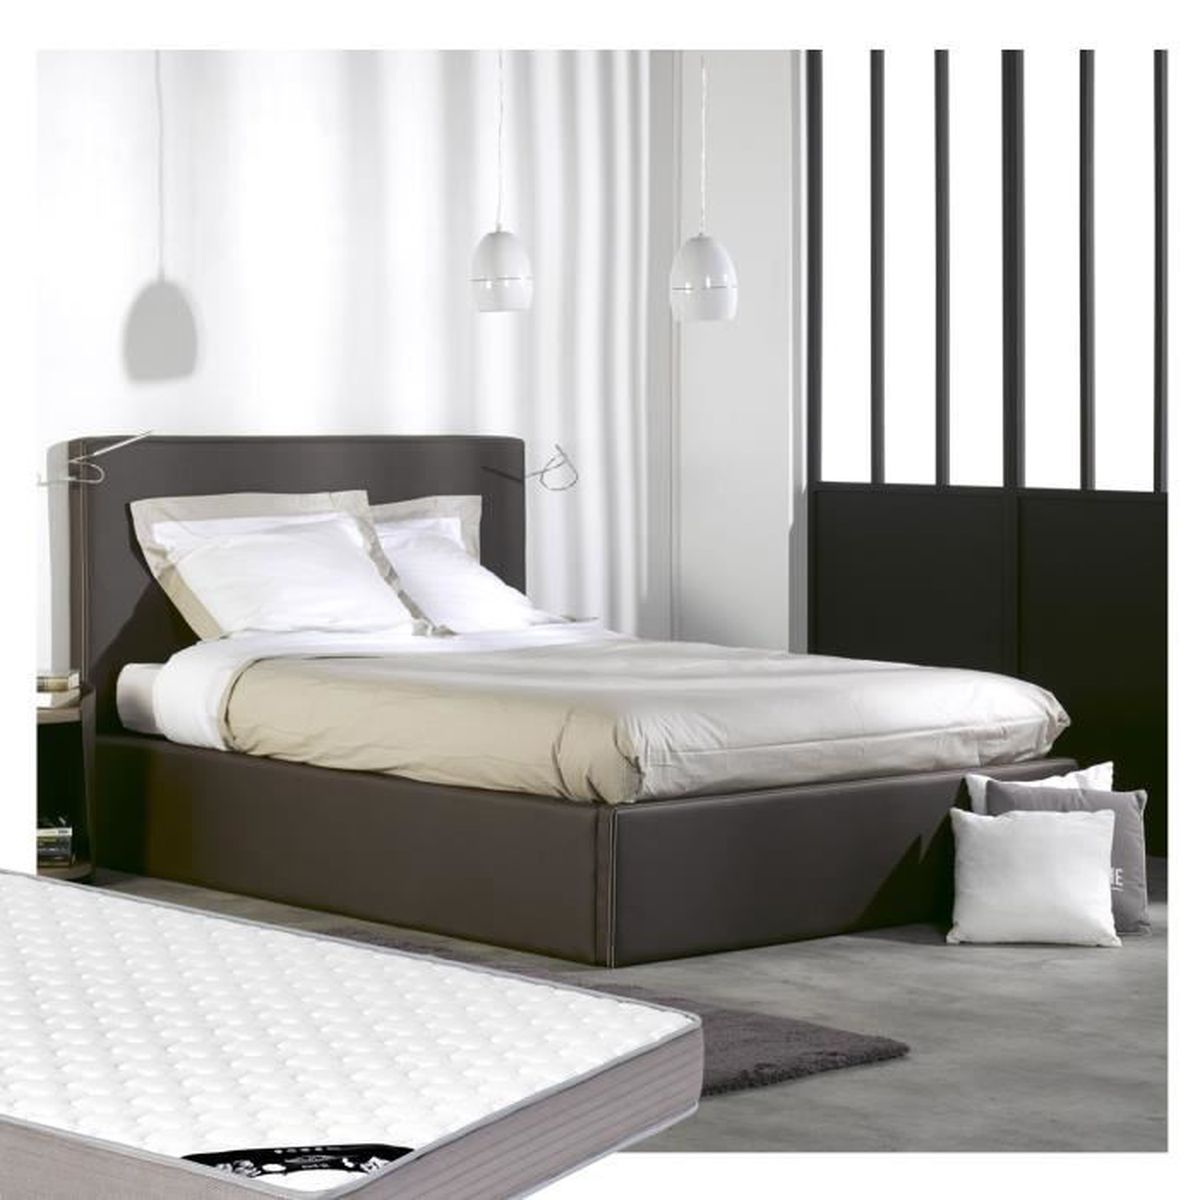 lit coffre 140x200 matelas similicuir achat vente lit complet lit coffre 140x200. Black Bedroom Furniture Sets. Home Design Ideas